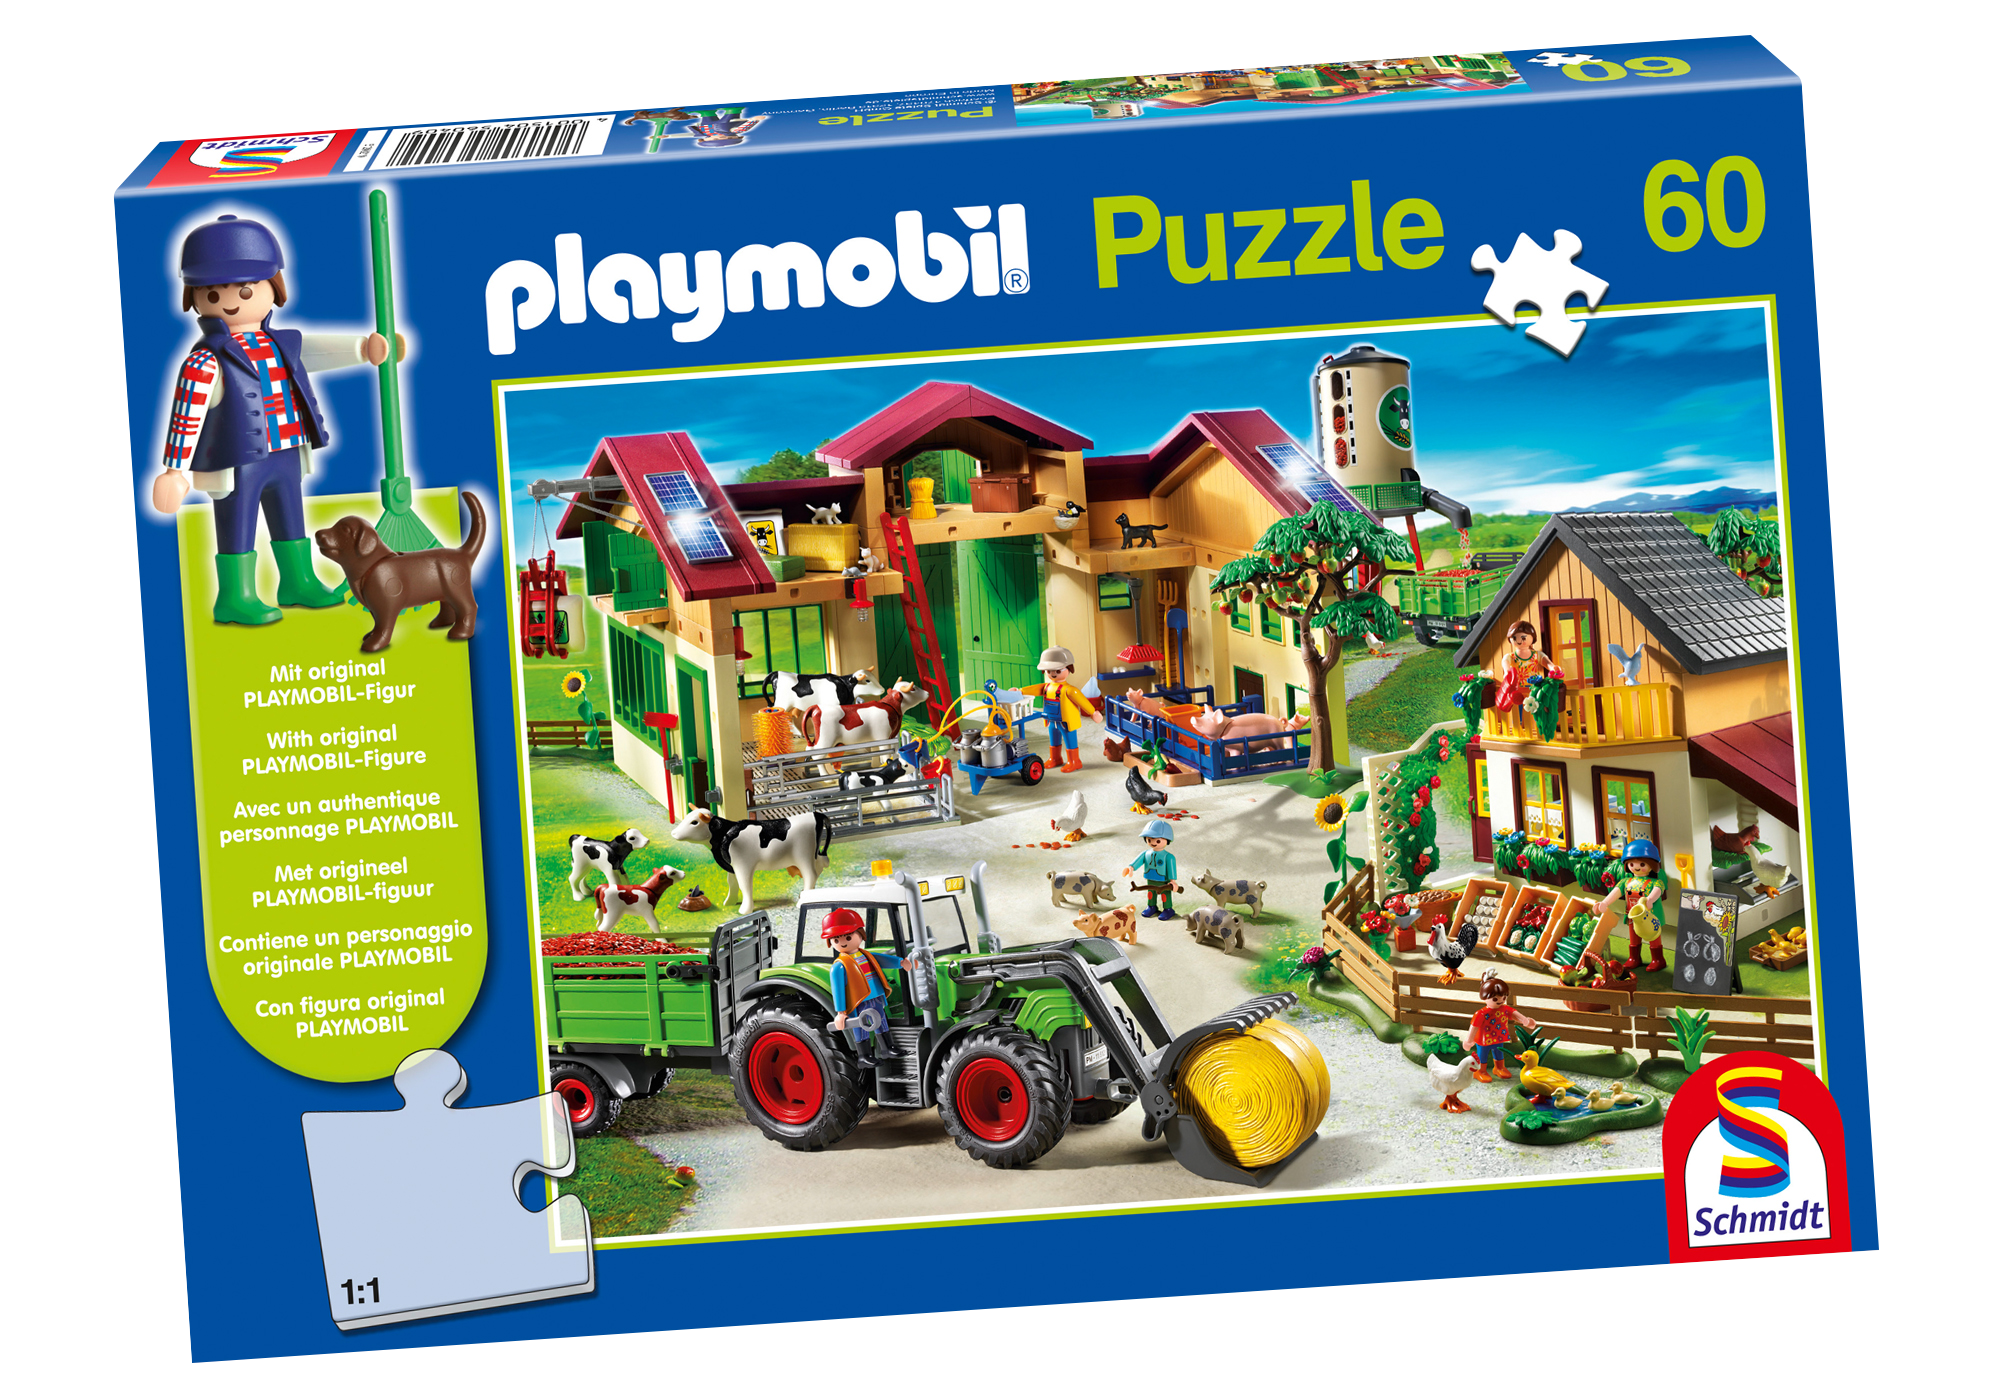 http://media.playmobil.com/i/playmobil/80352_product_detail